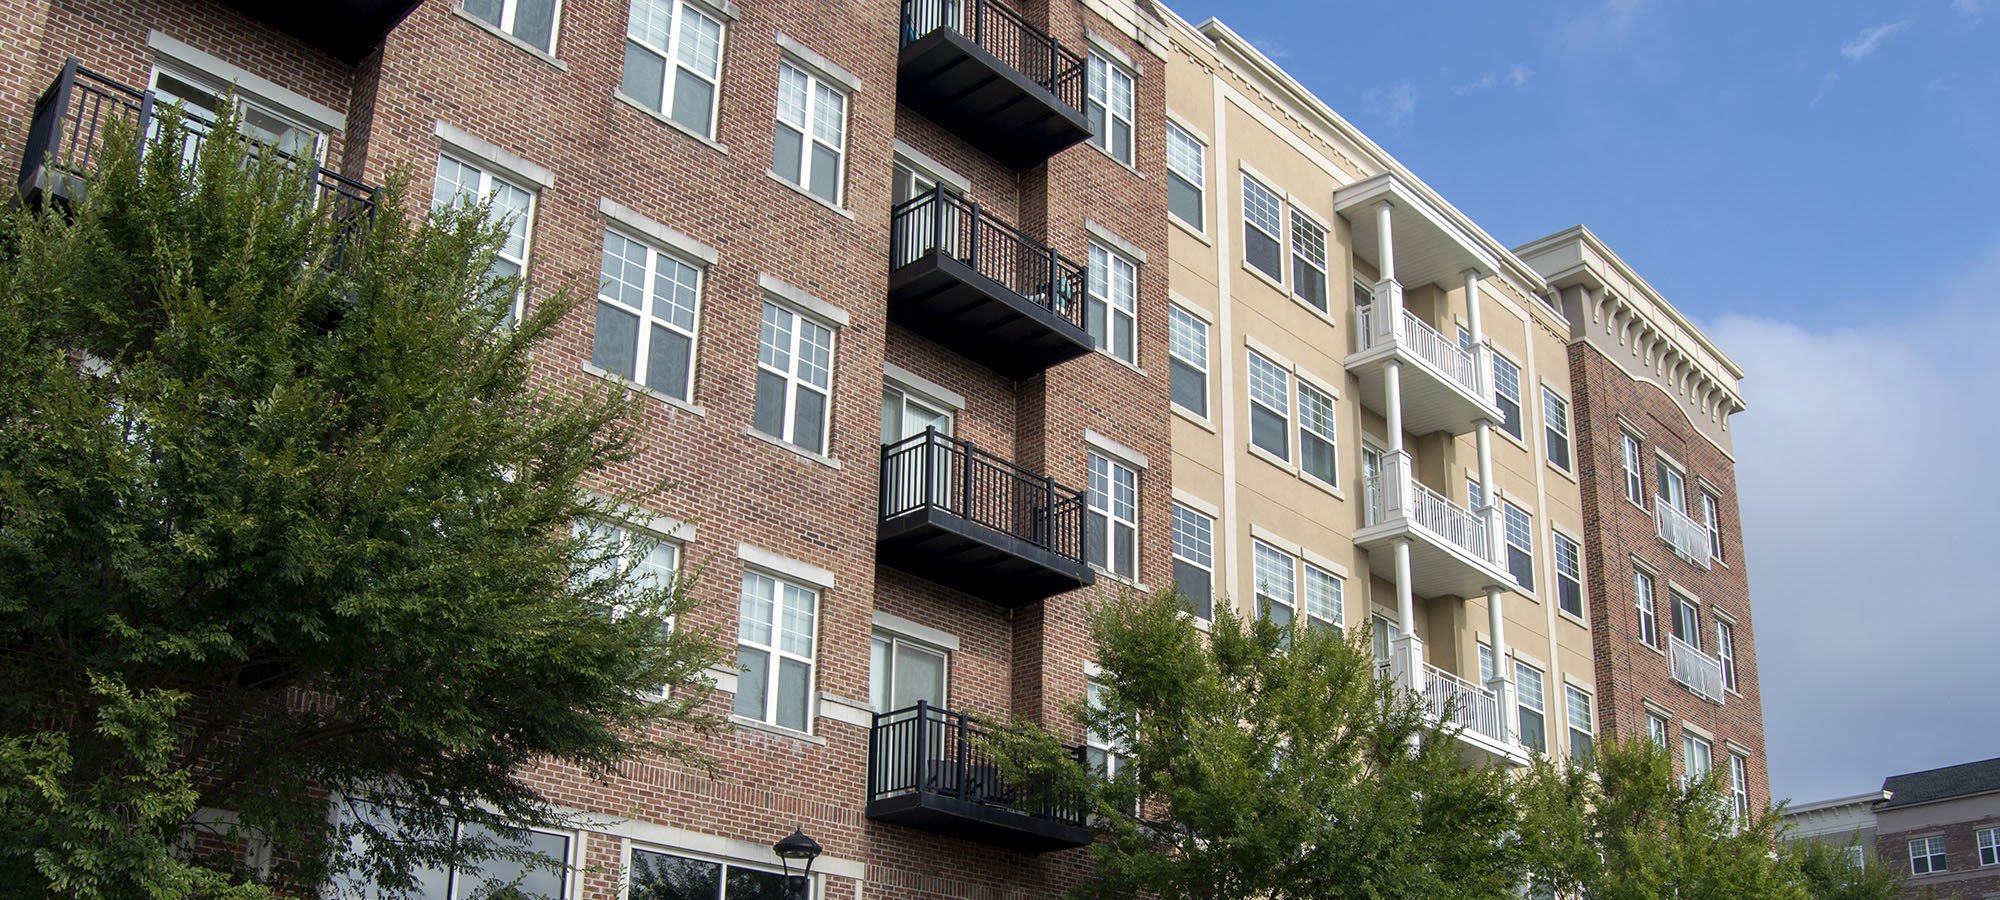 glen allen va apartments for rent the flats at west broad village